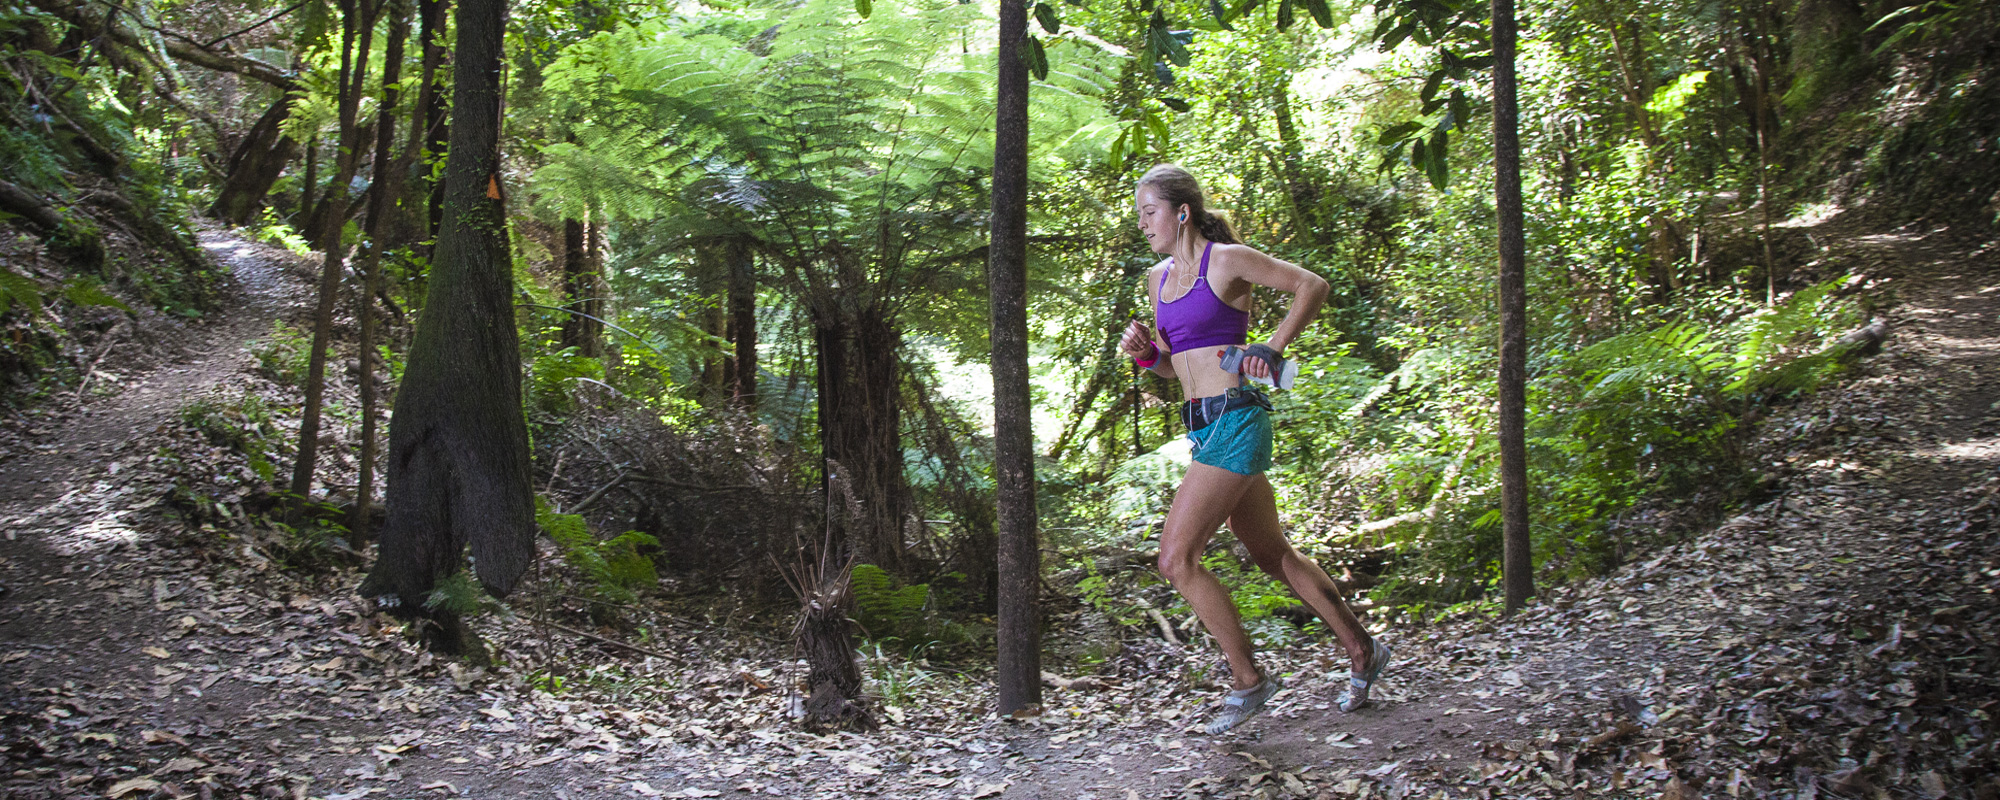 Ruby on her way to winning Tarawera